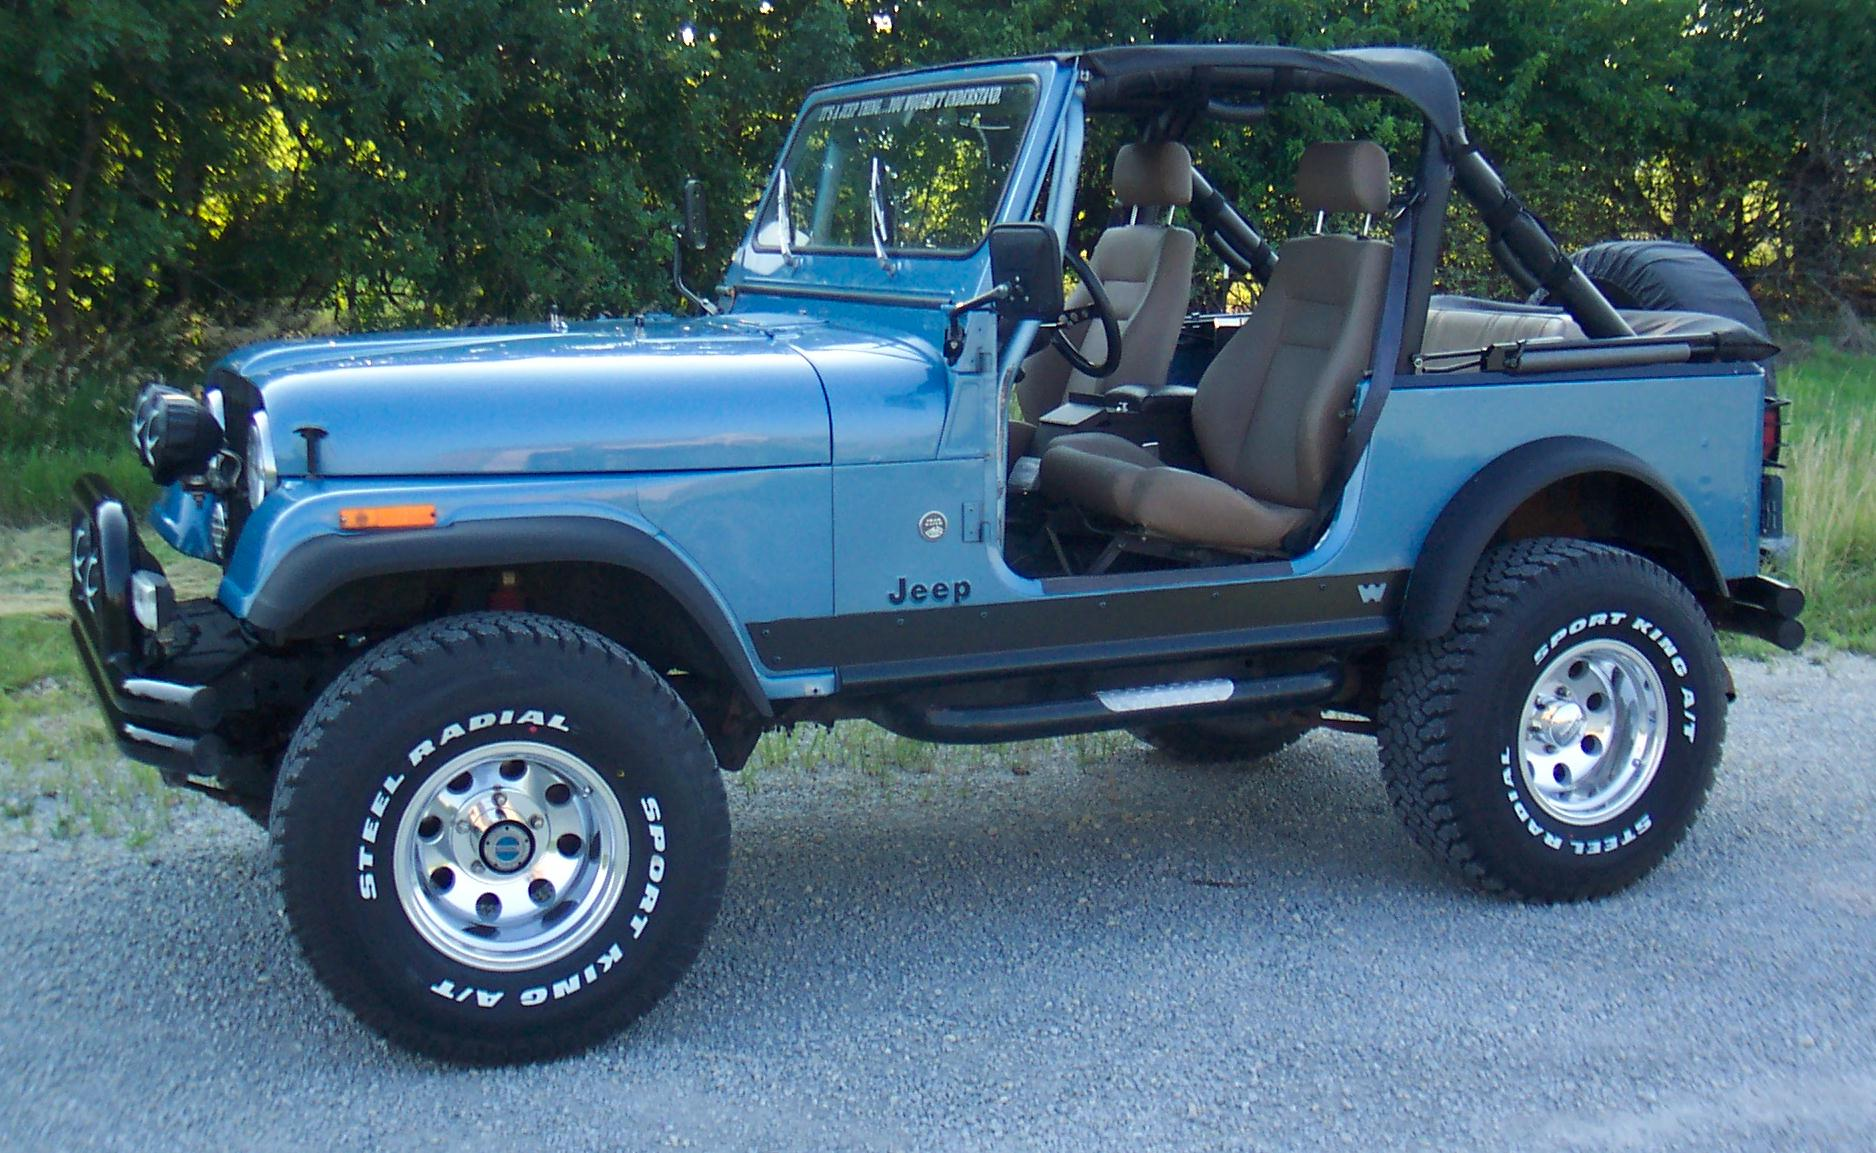 Jeep Yj Lifted >> Jeep Wrangler CJ-7 technical details, history, photos on Better Parts LTD